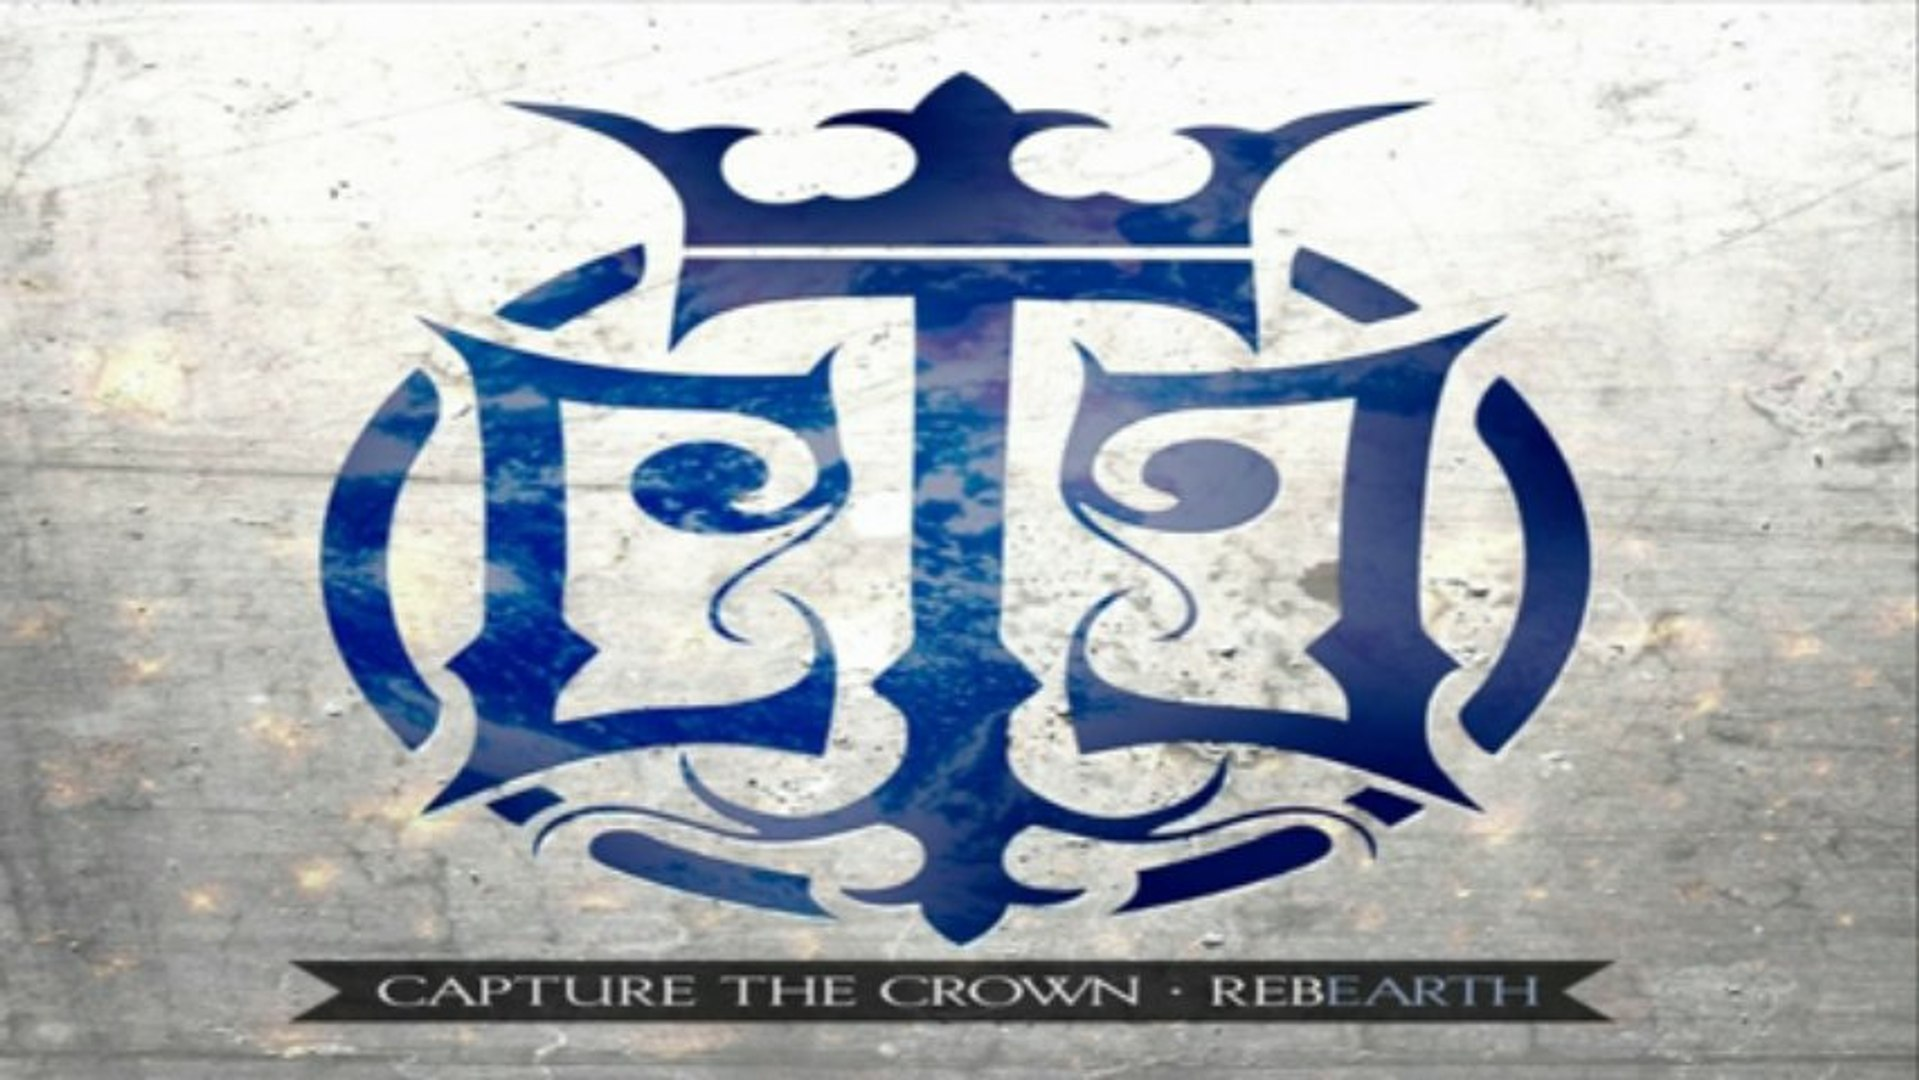 rebearth capture the crown